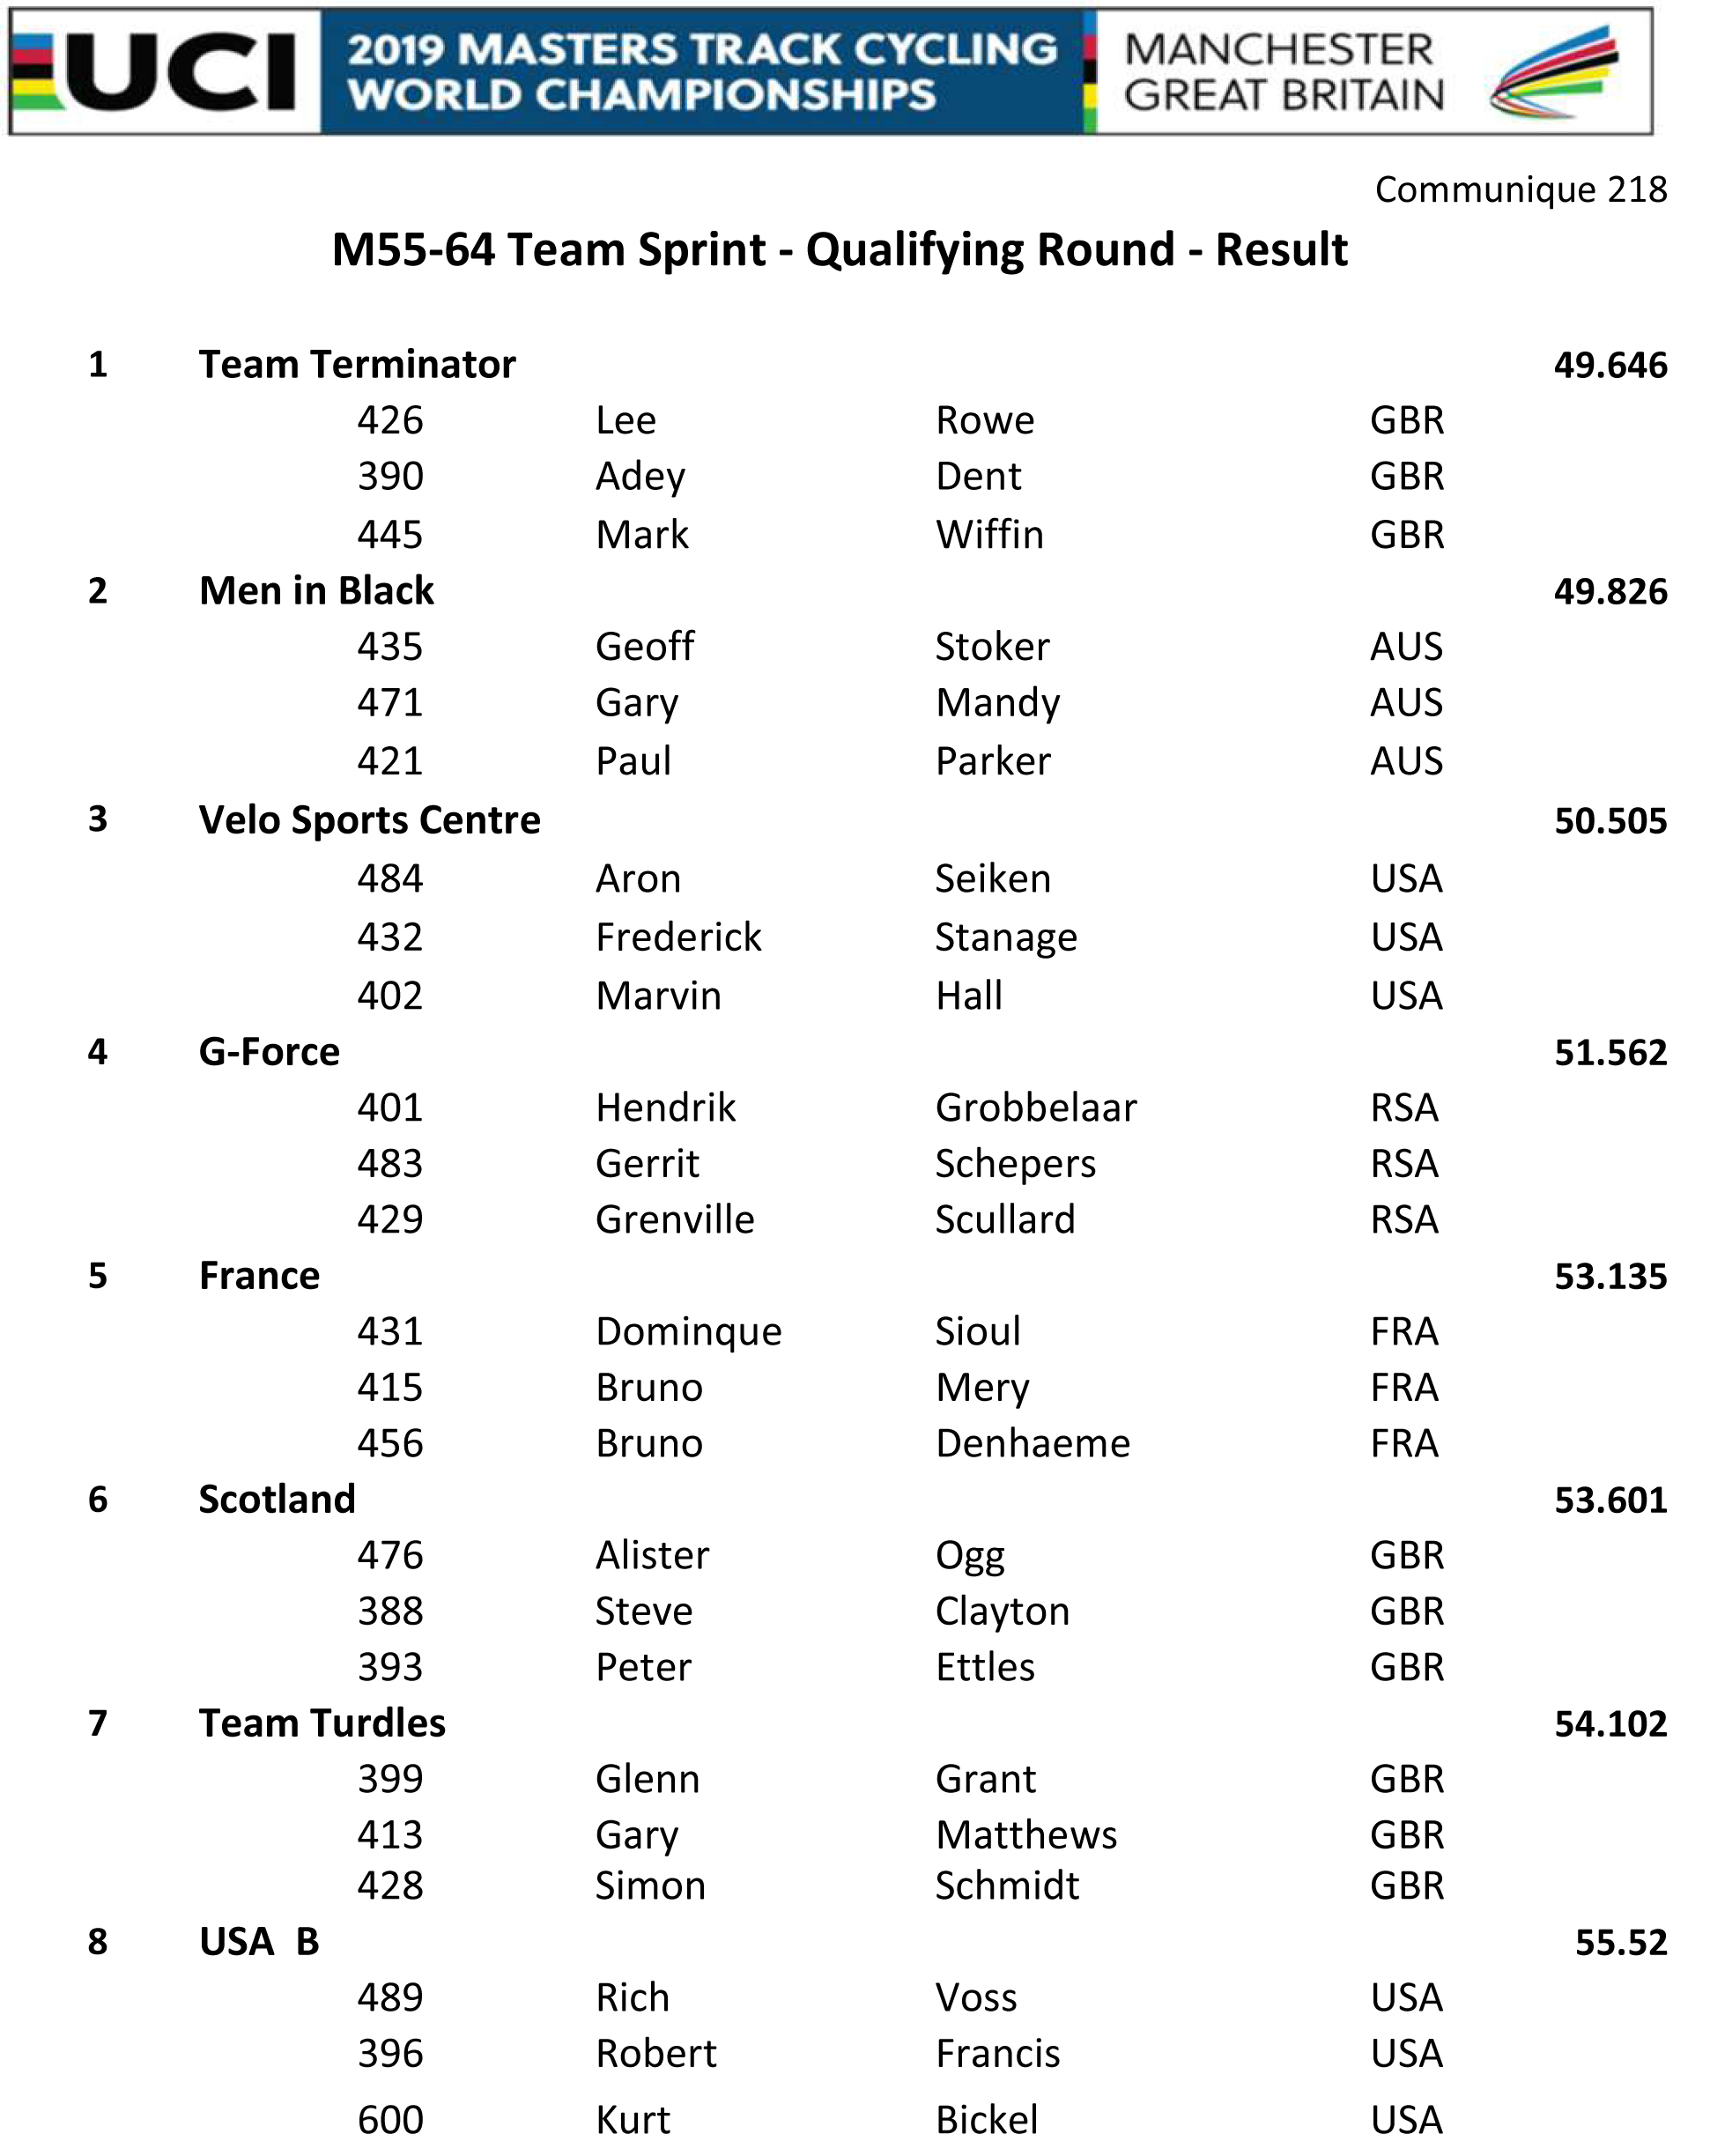 M5564 TEAM SPRINT QUALIFYING RESULT